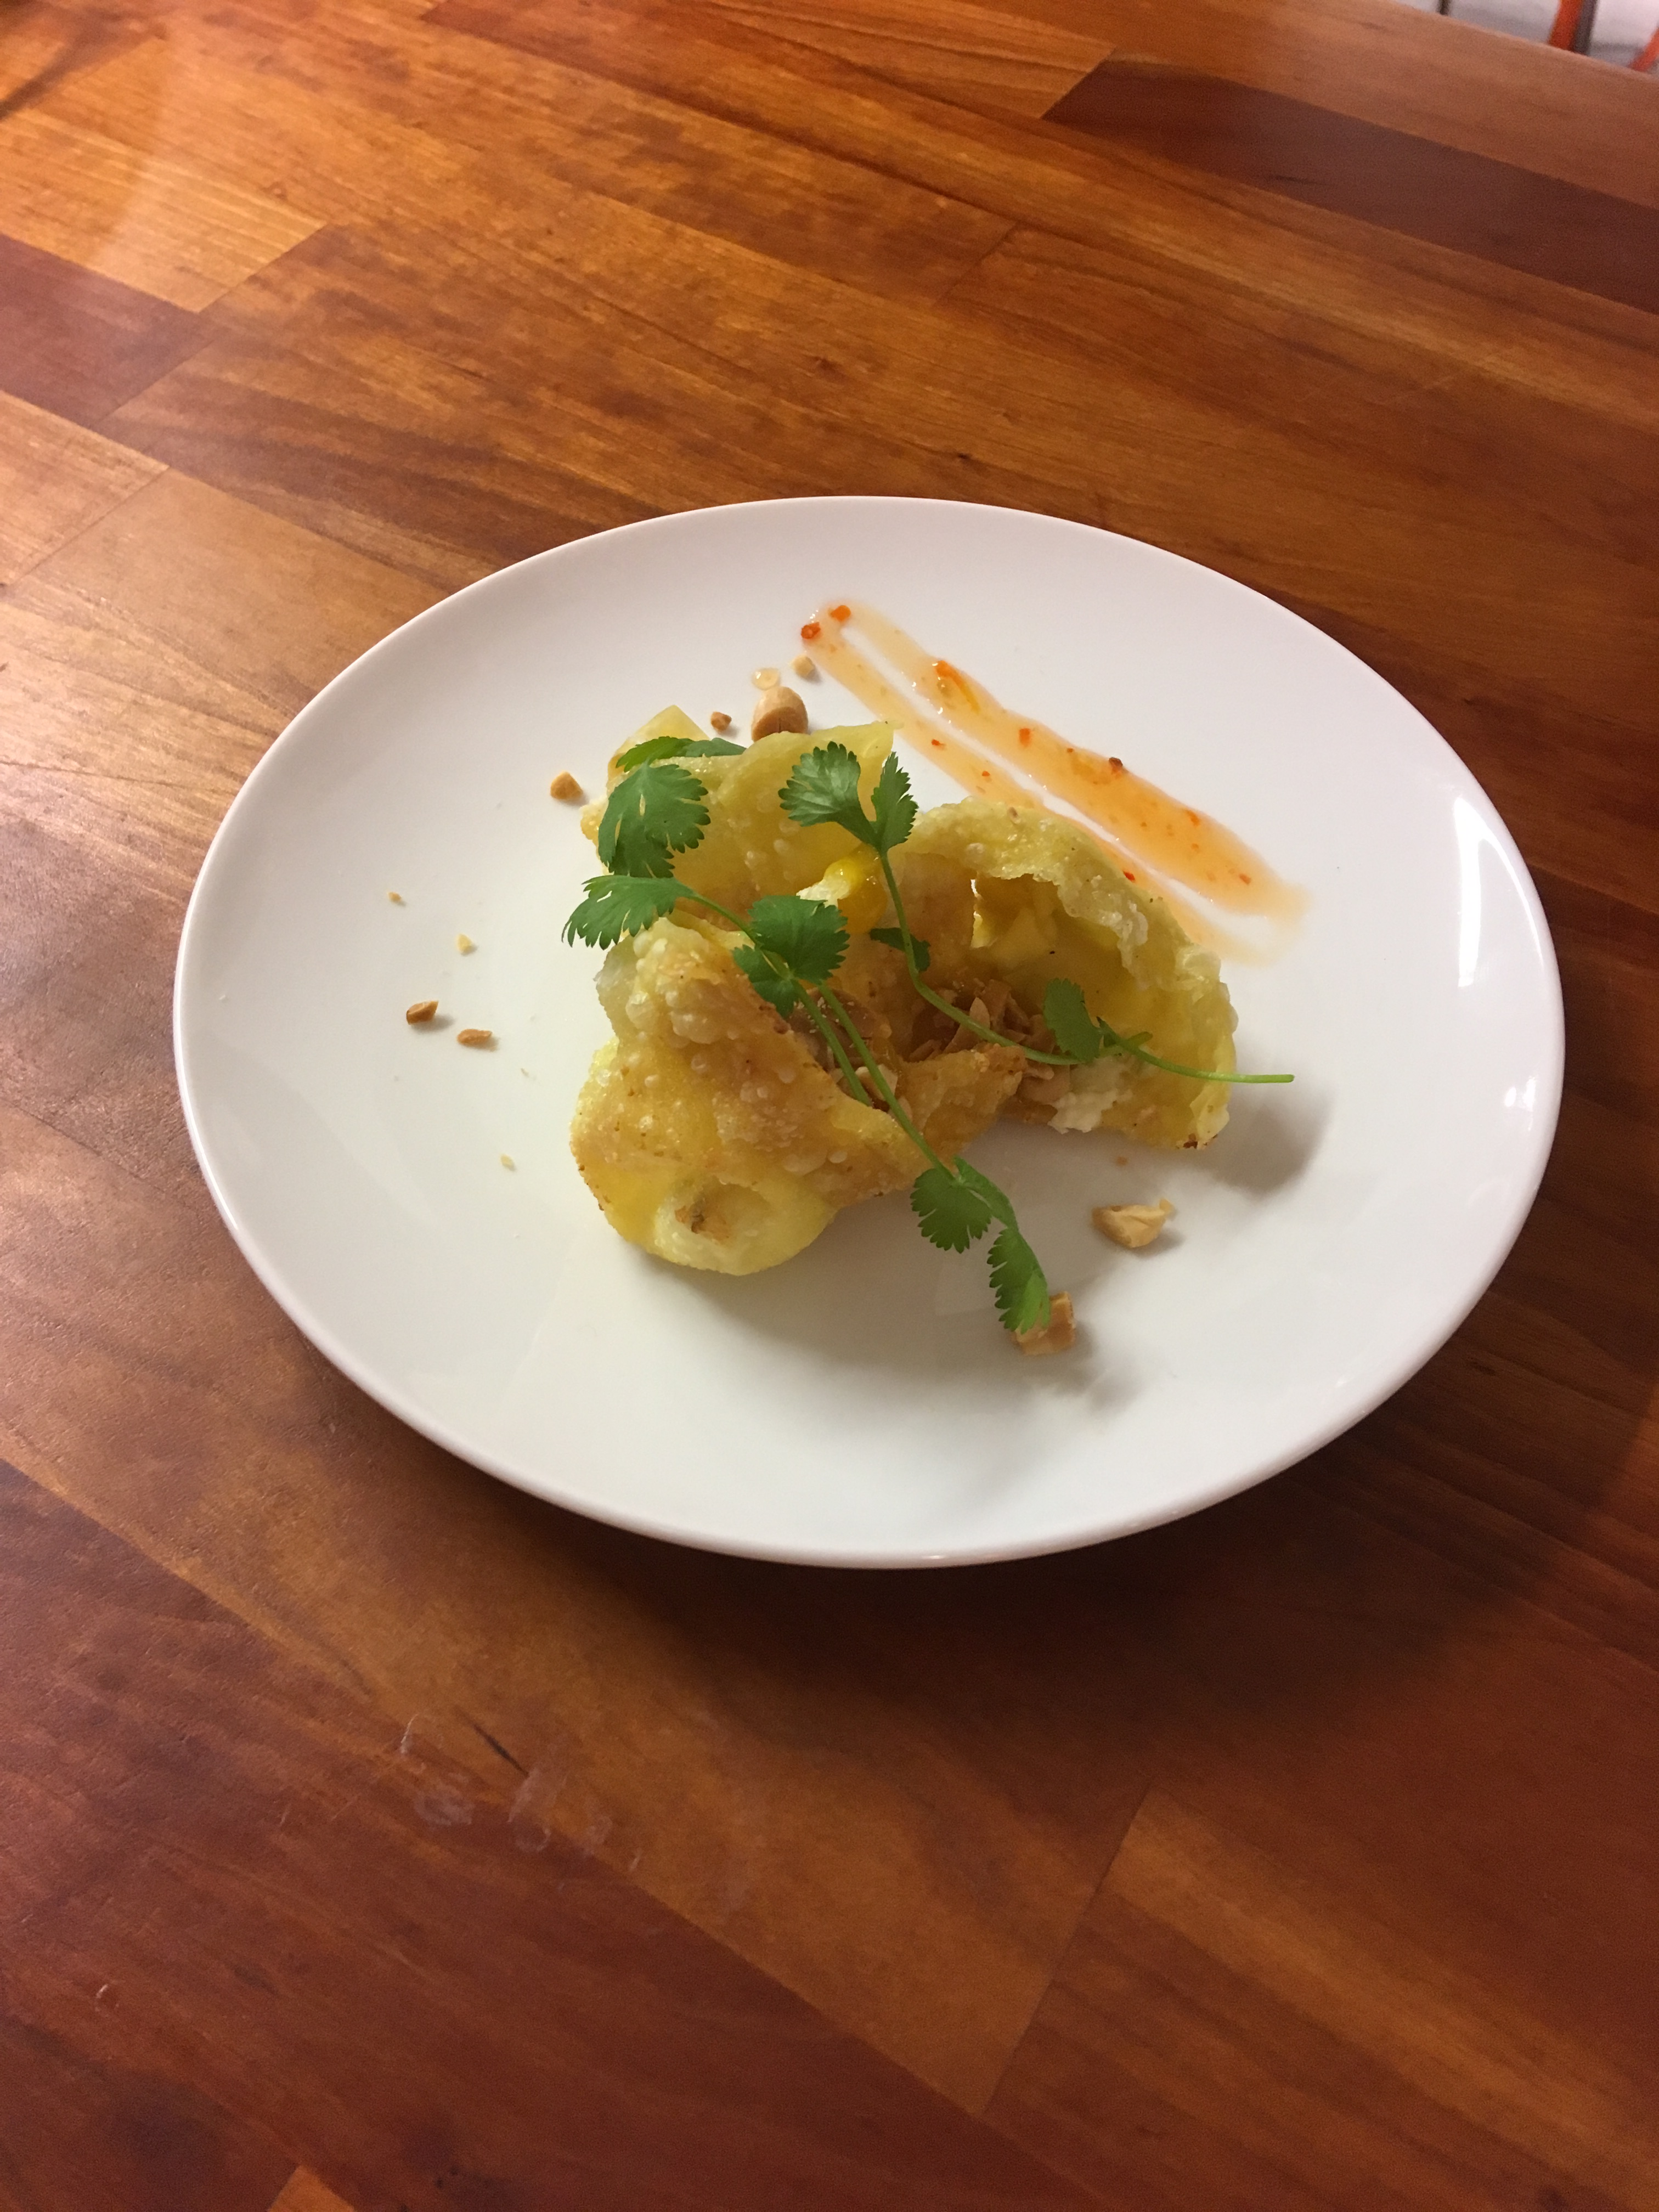 Vietnamese Cuisine With Tram – Hoanh Tanh Chien, Deep Fried Wonton With Cream Cheese And Spring Onion